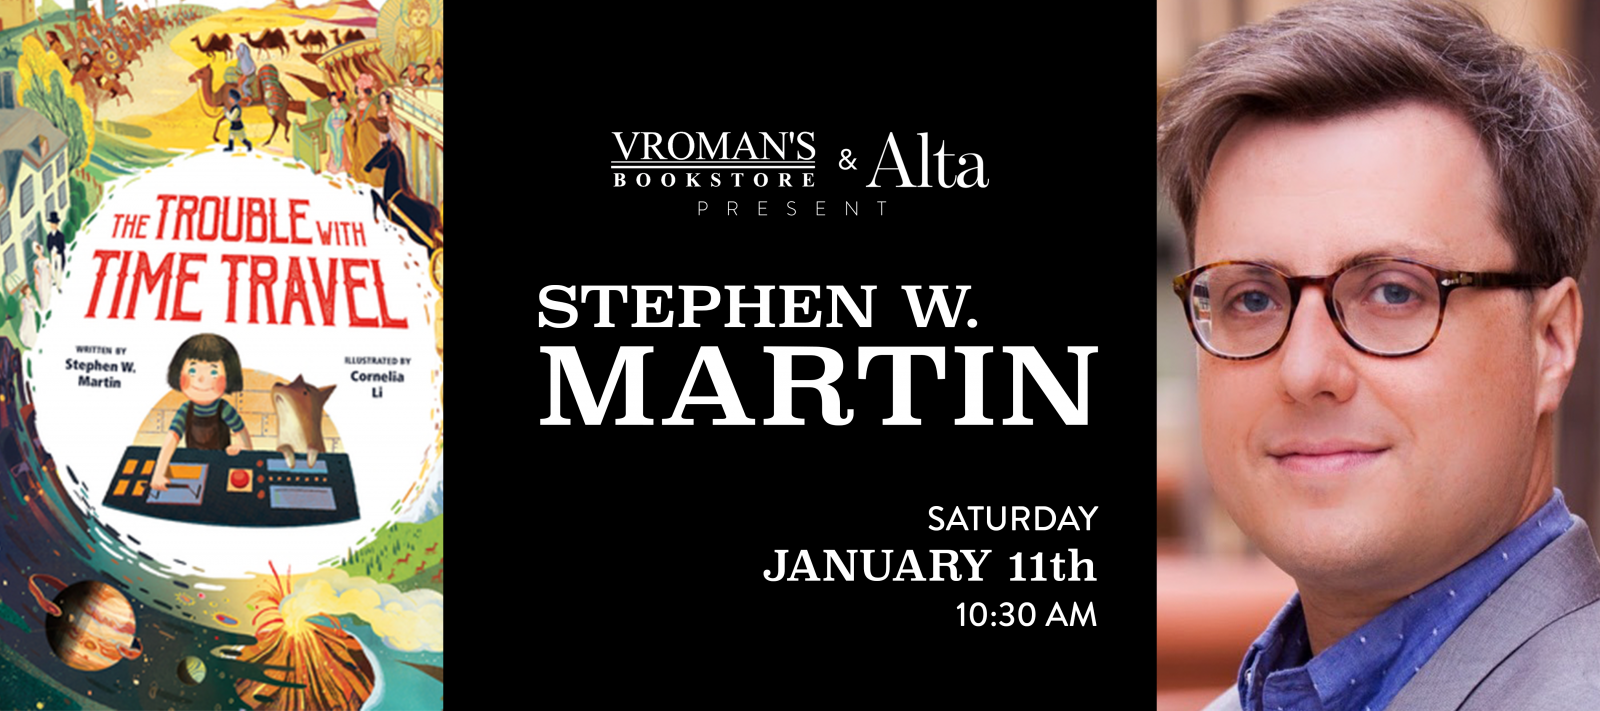 Stephen W. Martin presents and signs The Trouble with Time Travel on Saturday January 11th at 10:30am